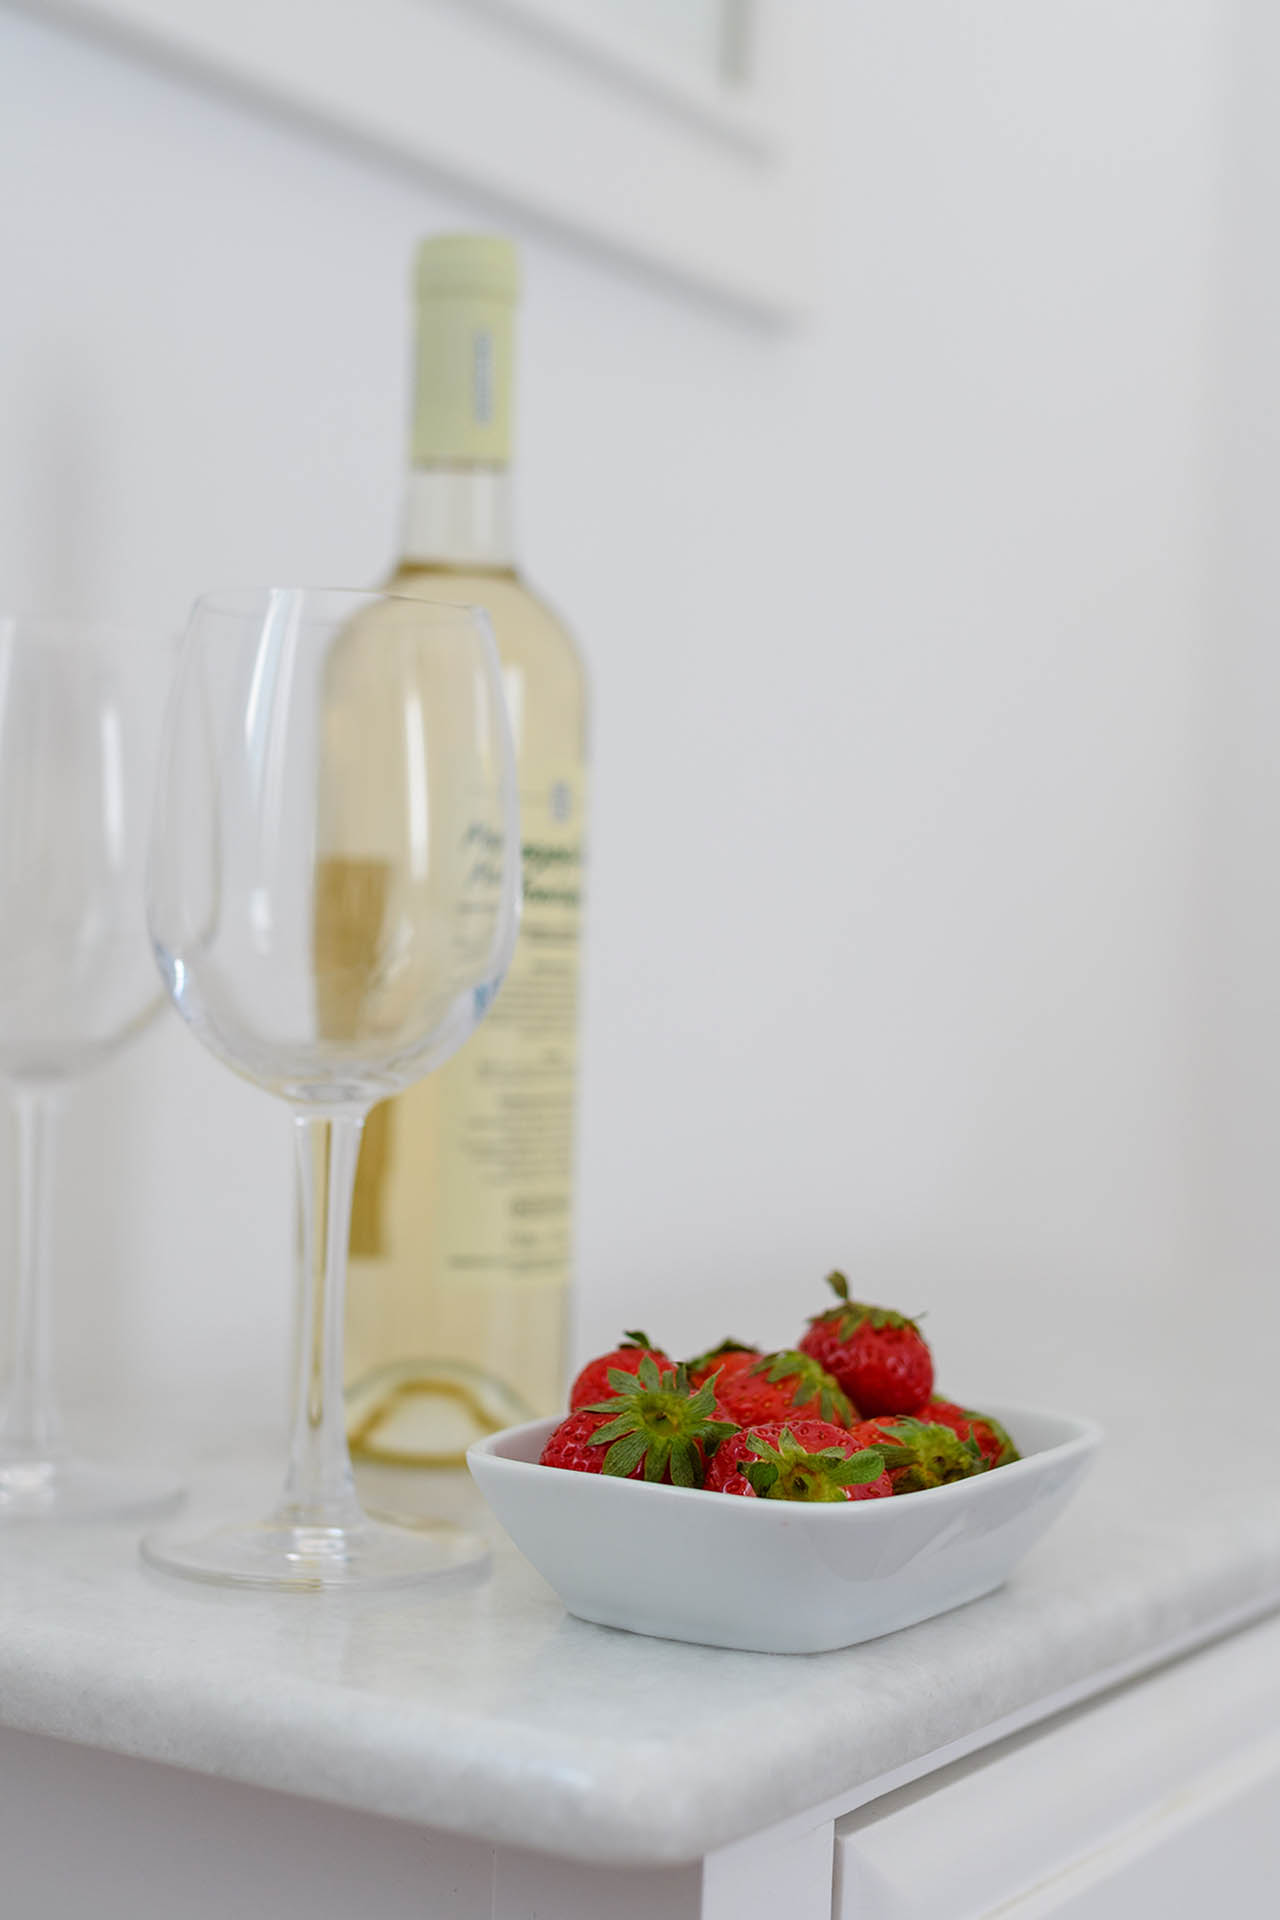 Kalestesia Suites - Wine & Strawberries